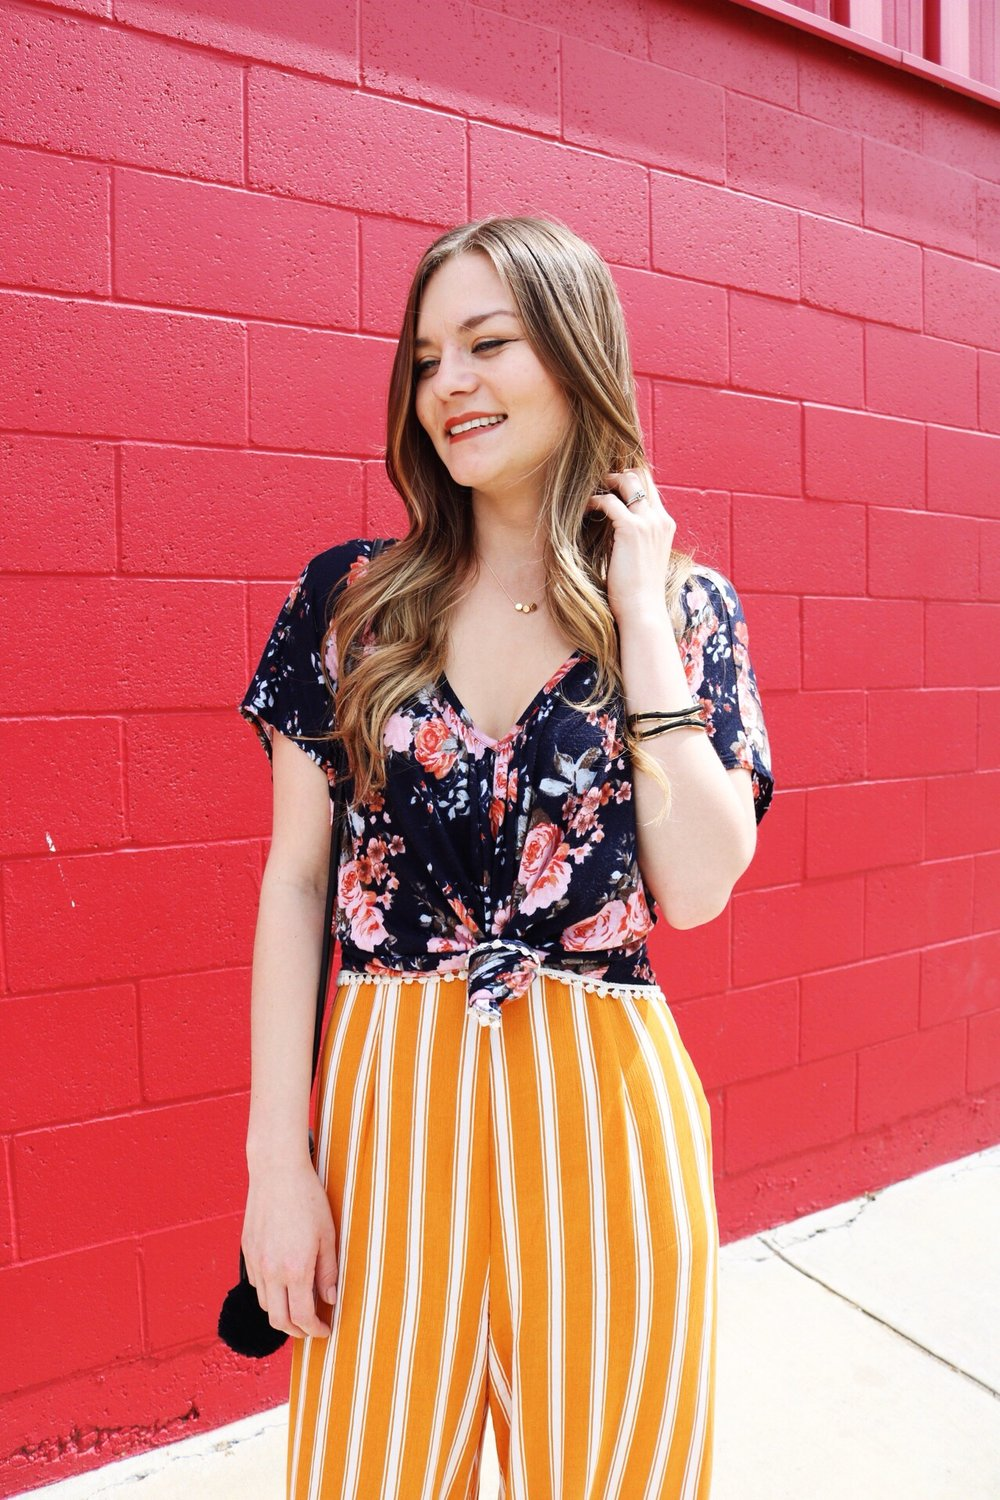 Yellow striped pants with navy floral top. Gold accessories